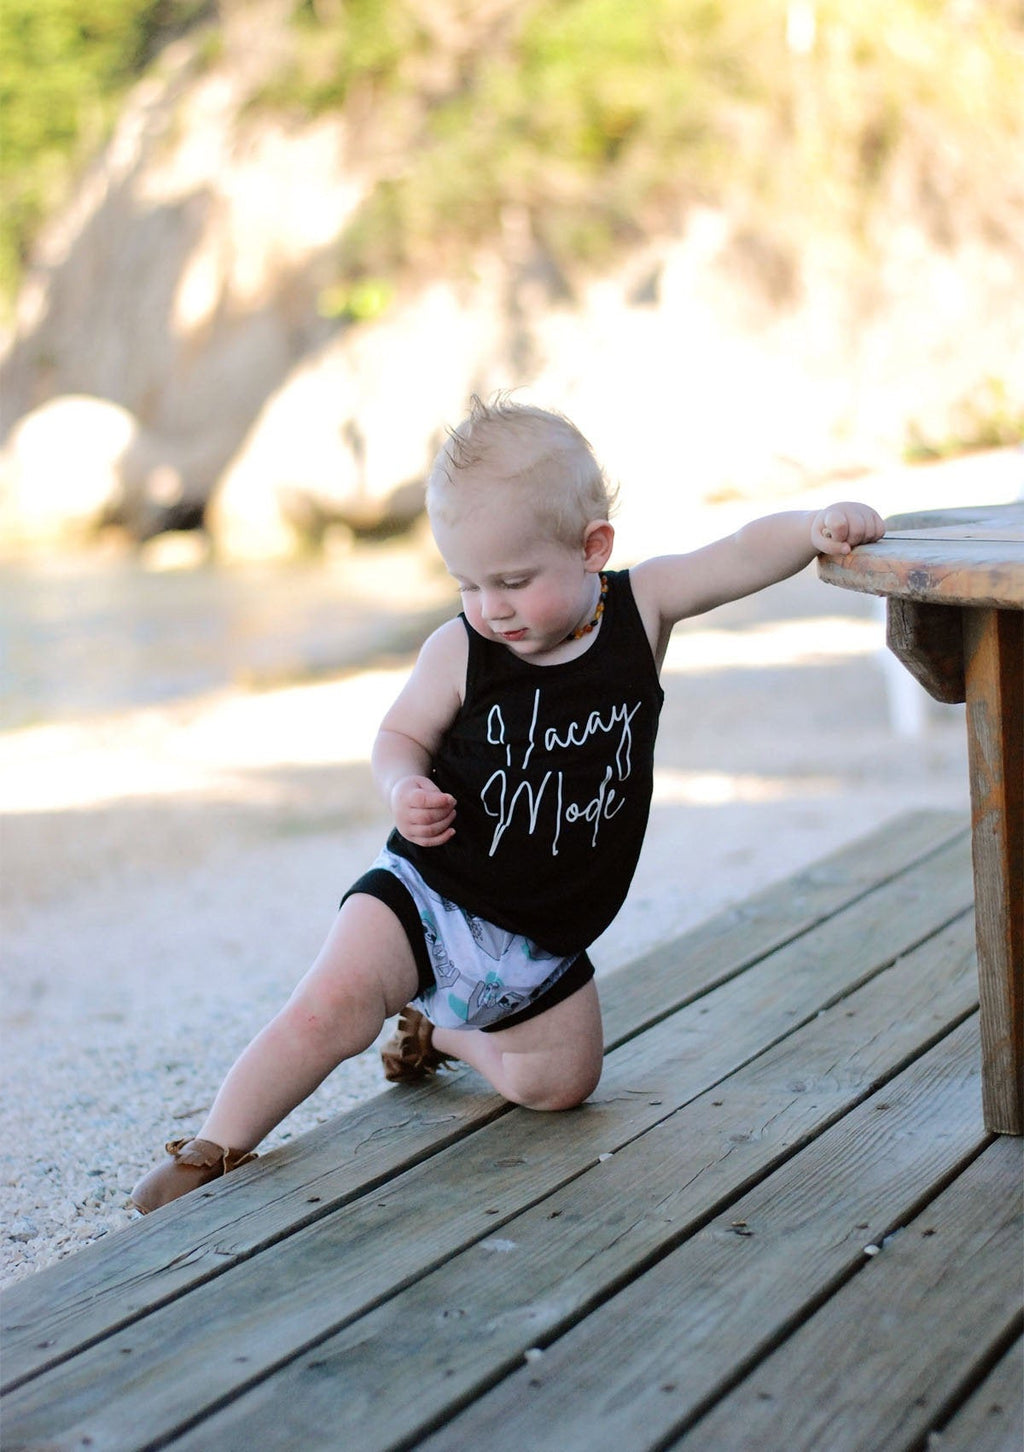 Vacay Mode Tank Top - Blue or Black Vacation Racerback Shirt - Girls Kids, Toddler, baby Summer Racerback Tee, Girls Shirt